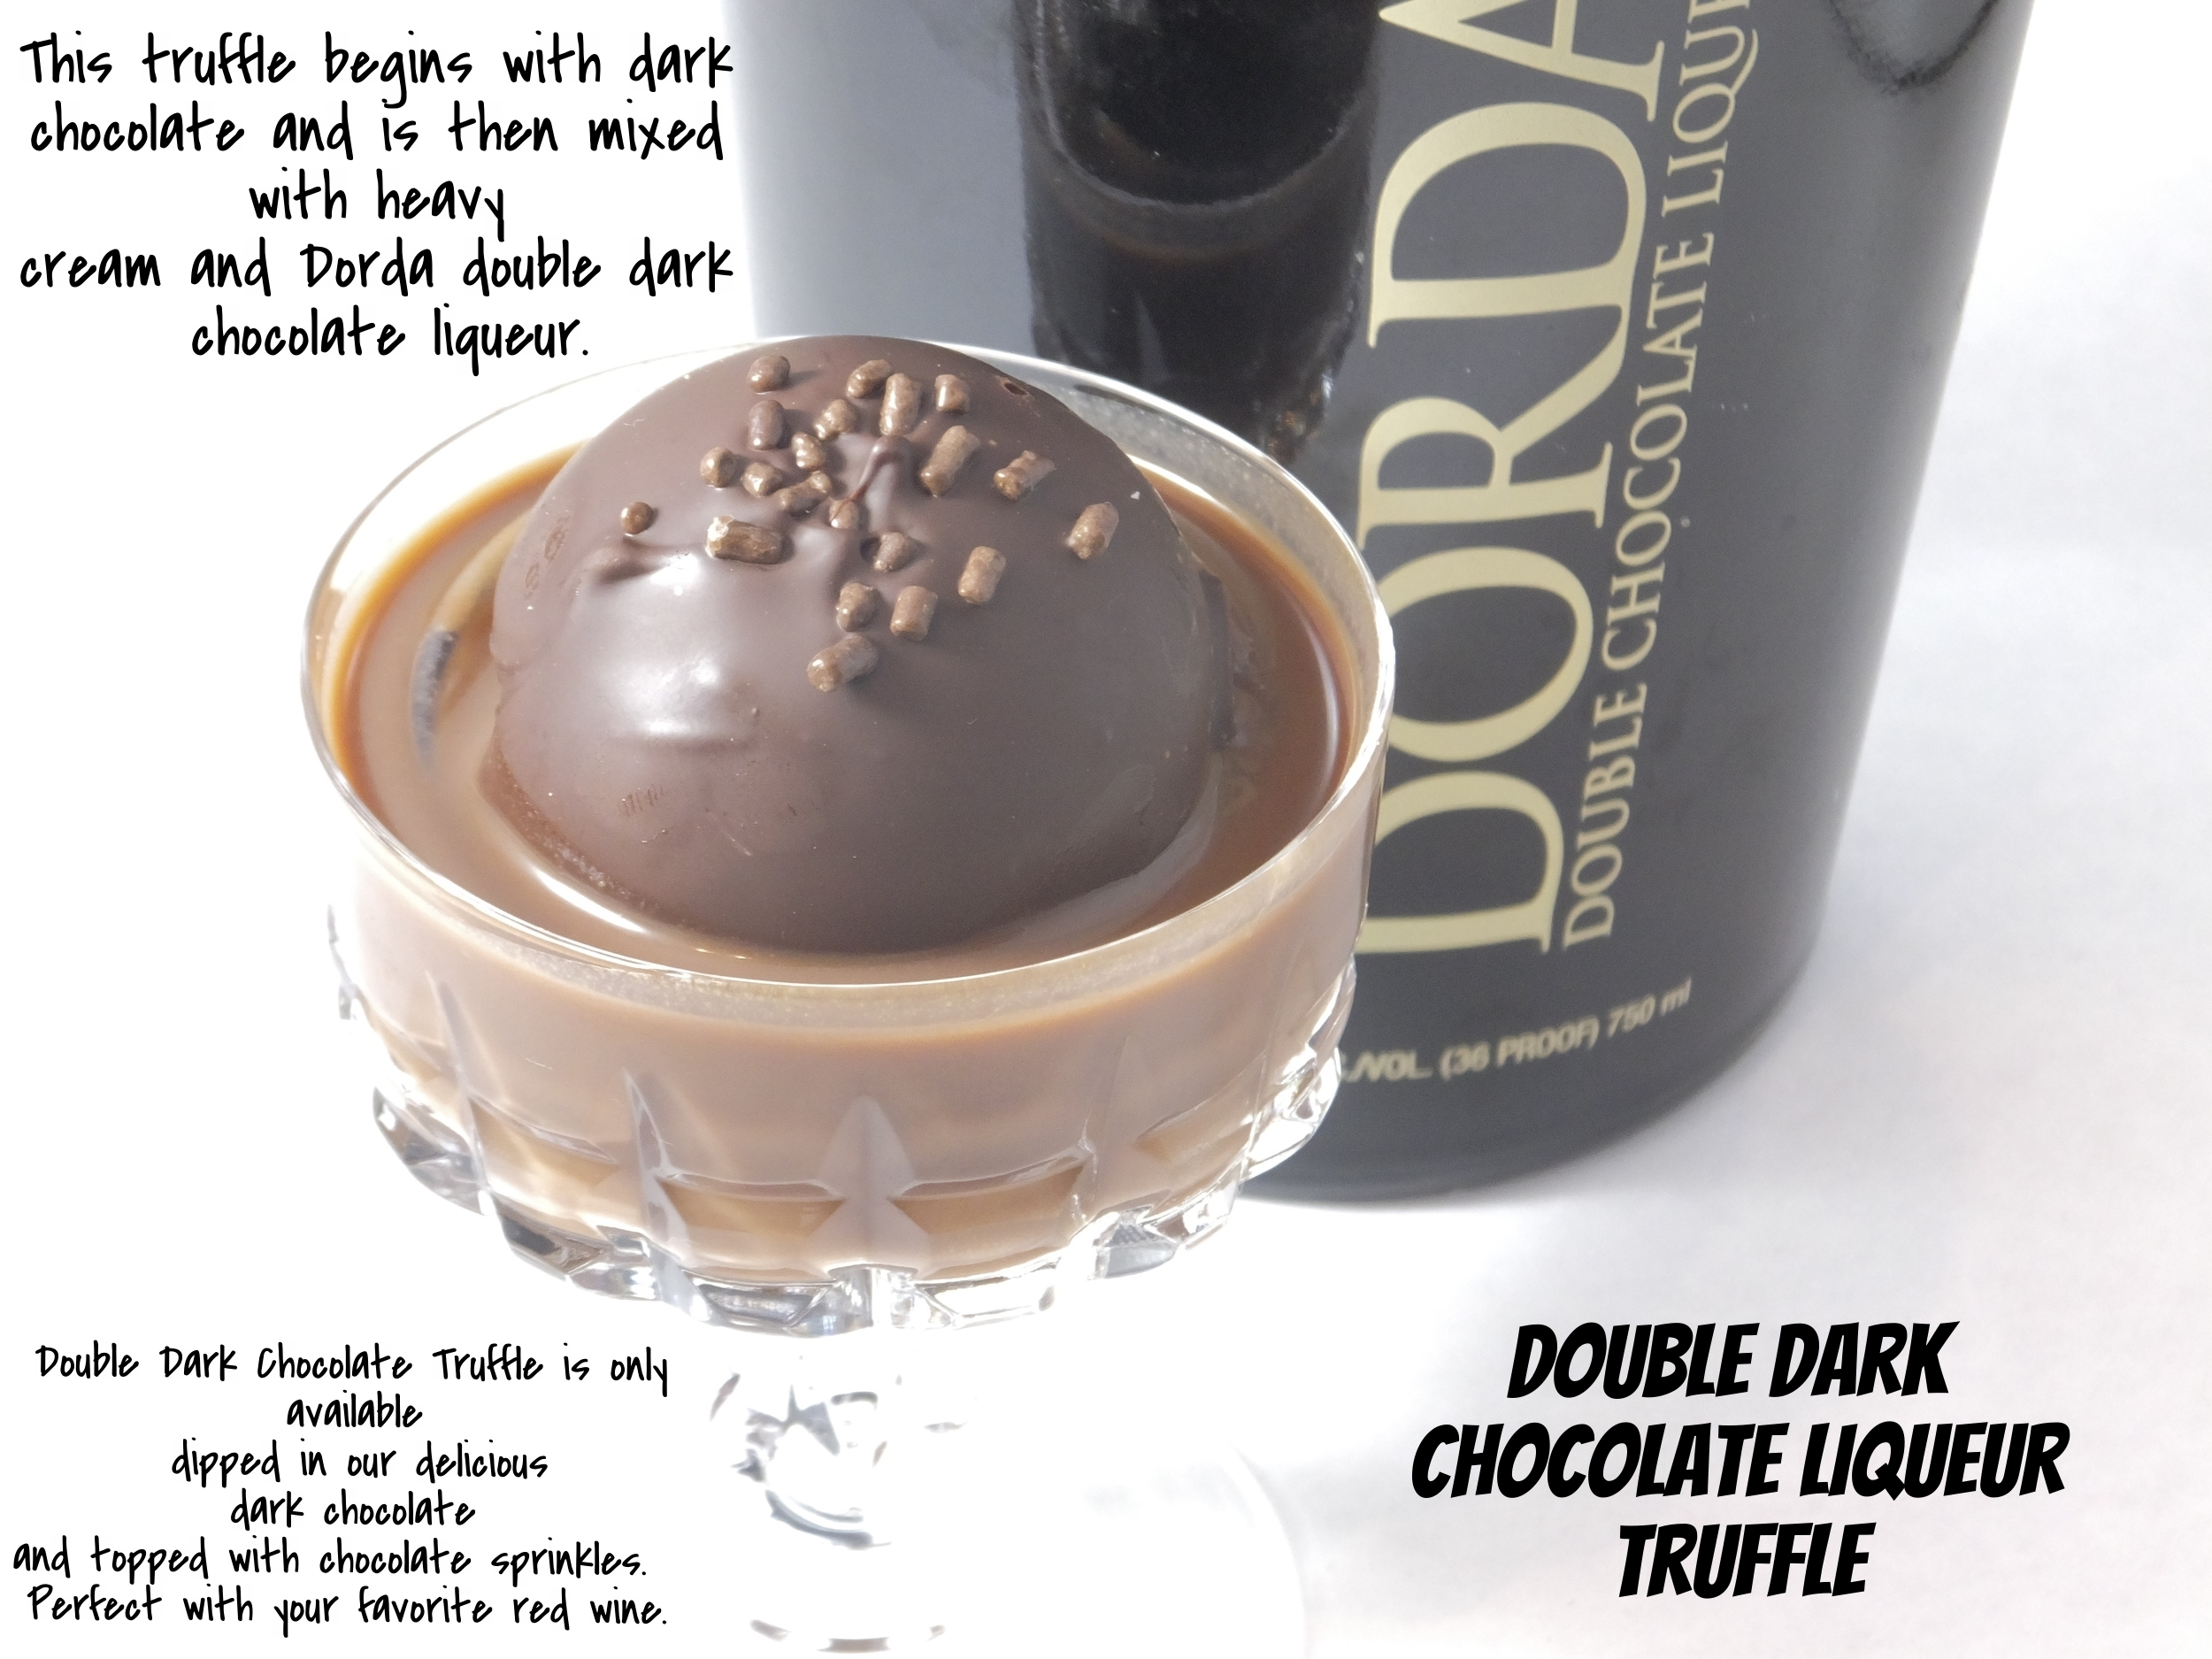 Double Dark Chocolate Liqueur Truffle